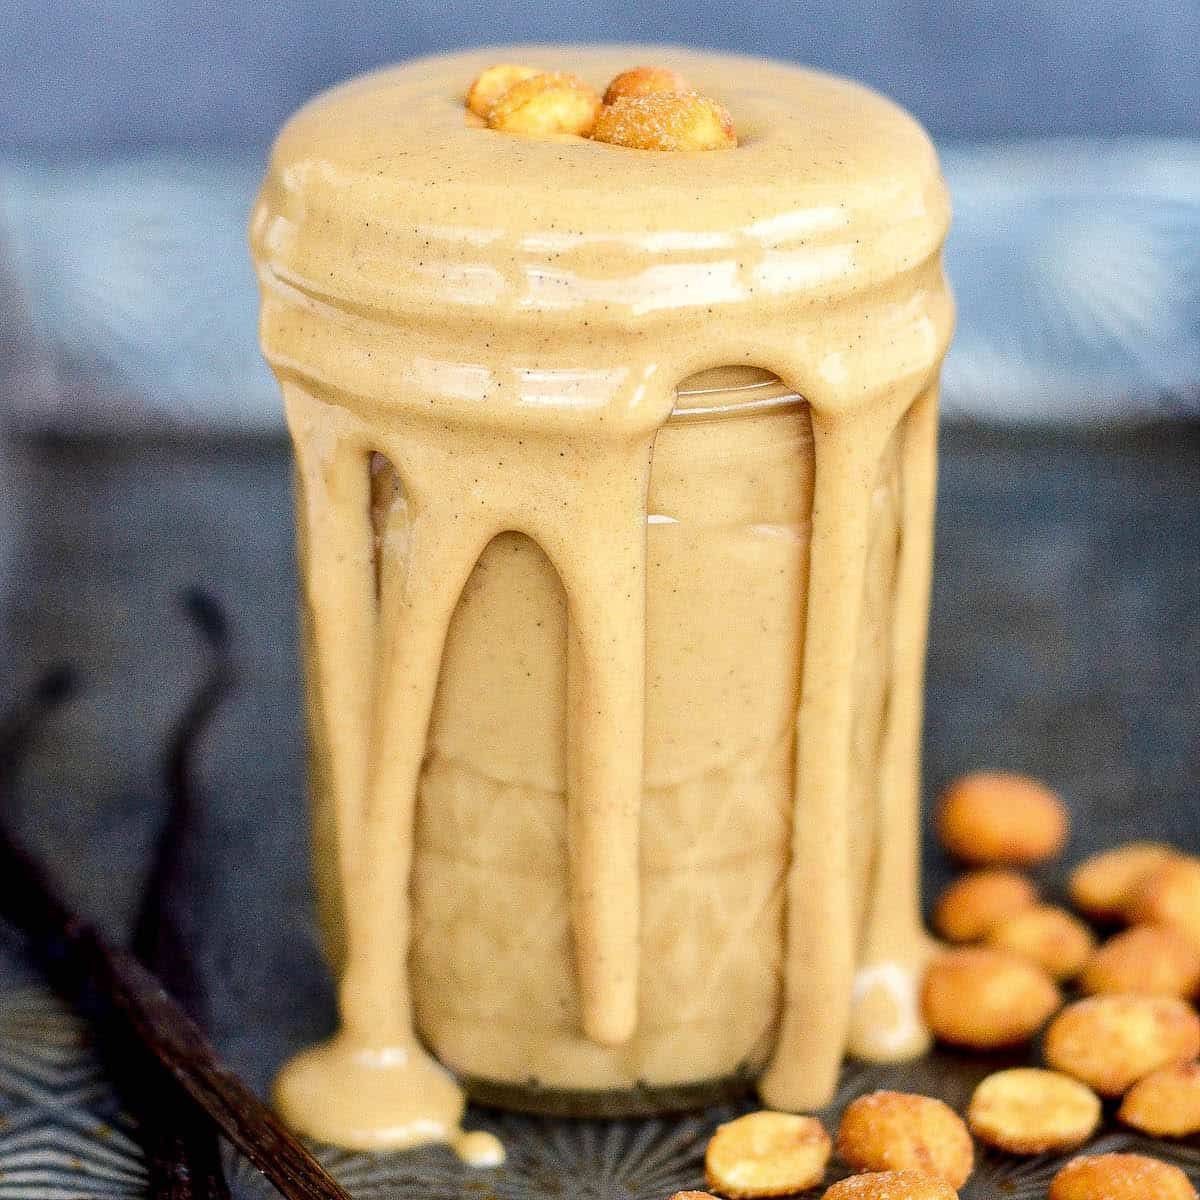 Front view of a jar of Honey Roasted Peanut Butter with some peanut butter dripping down the sides.